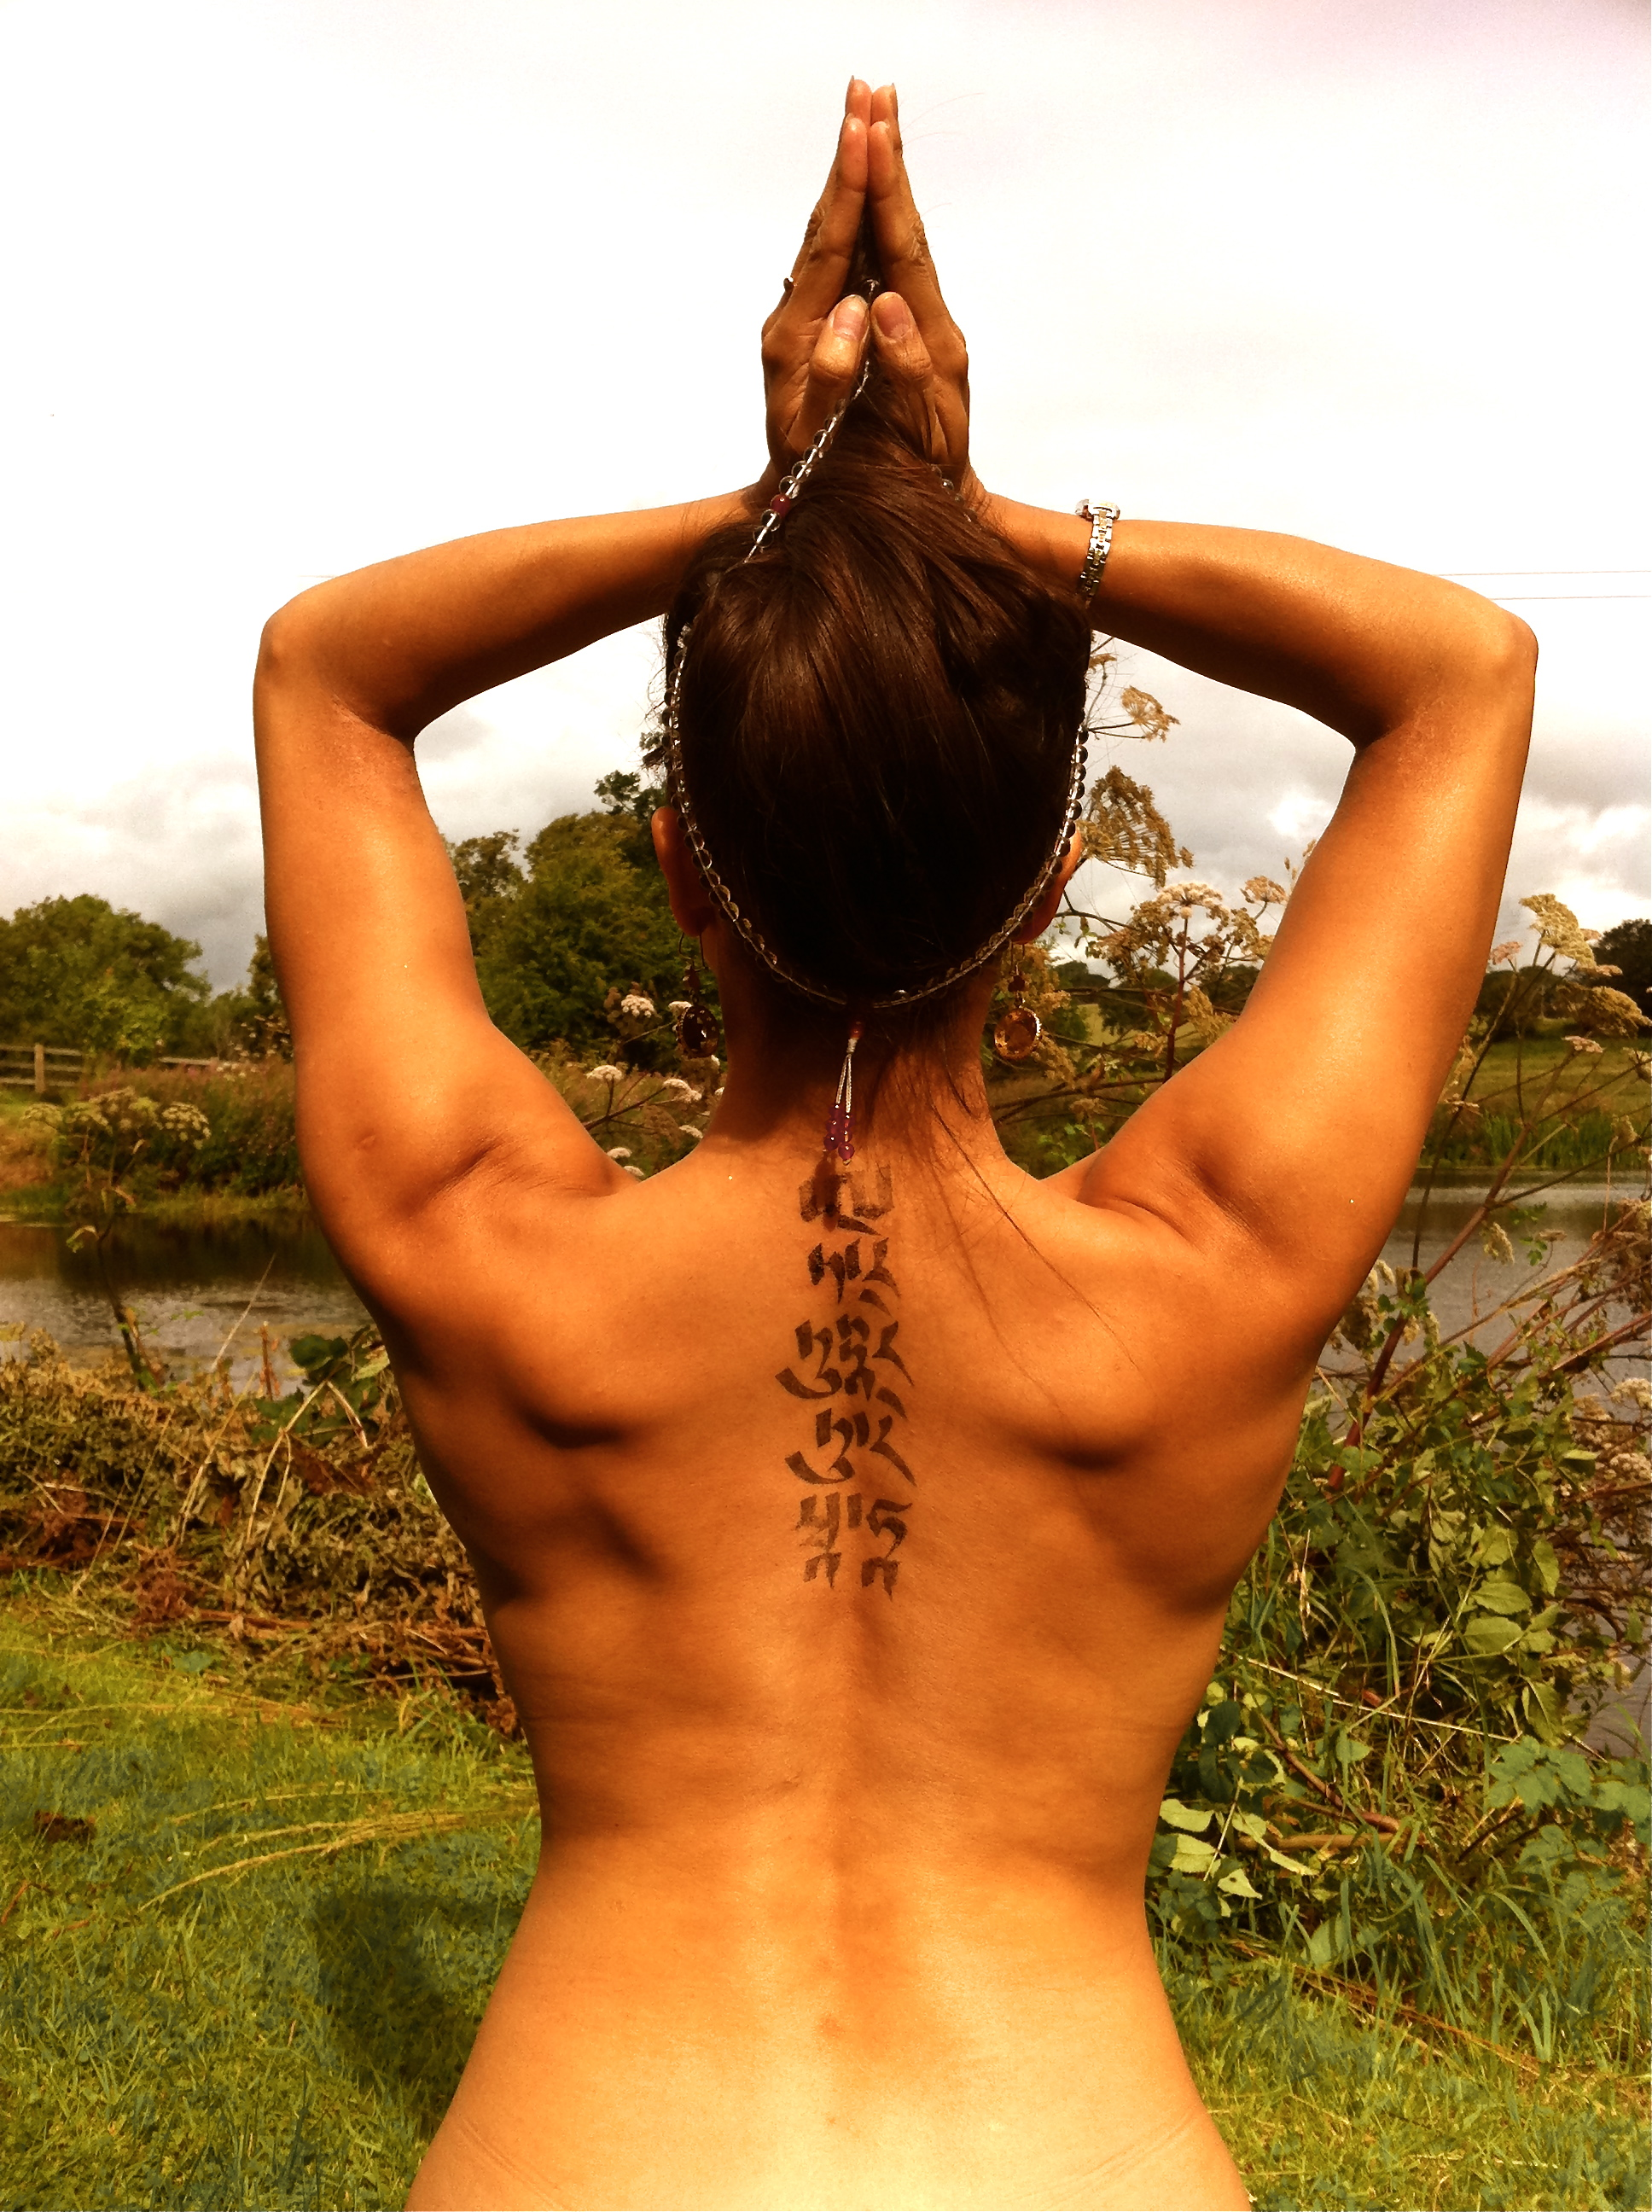 Lioness and cub tattoo yoga tattoo symbols